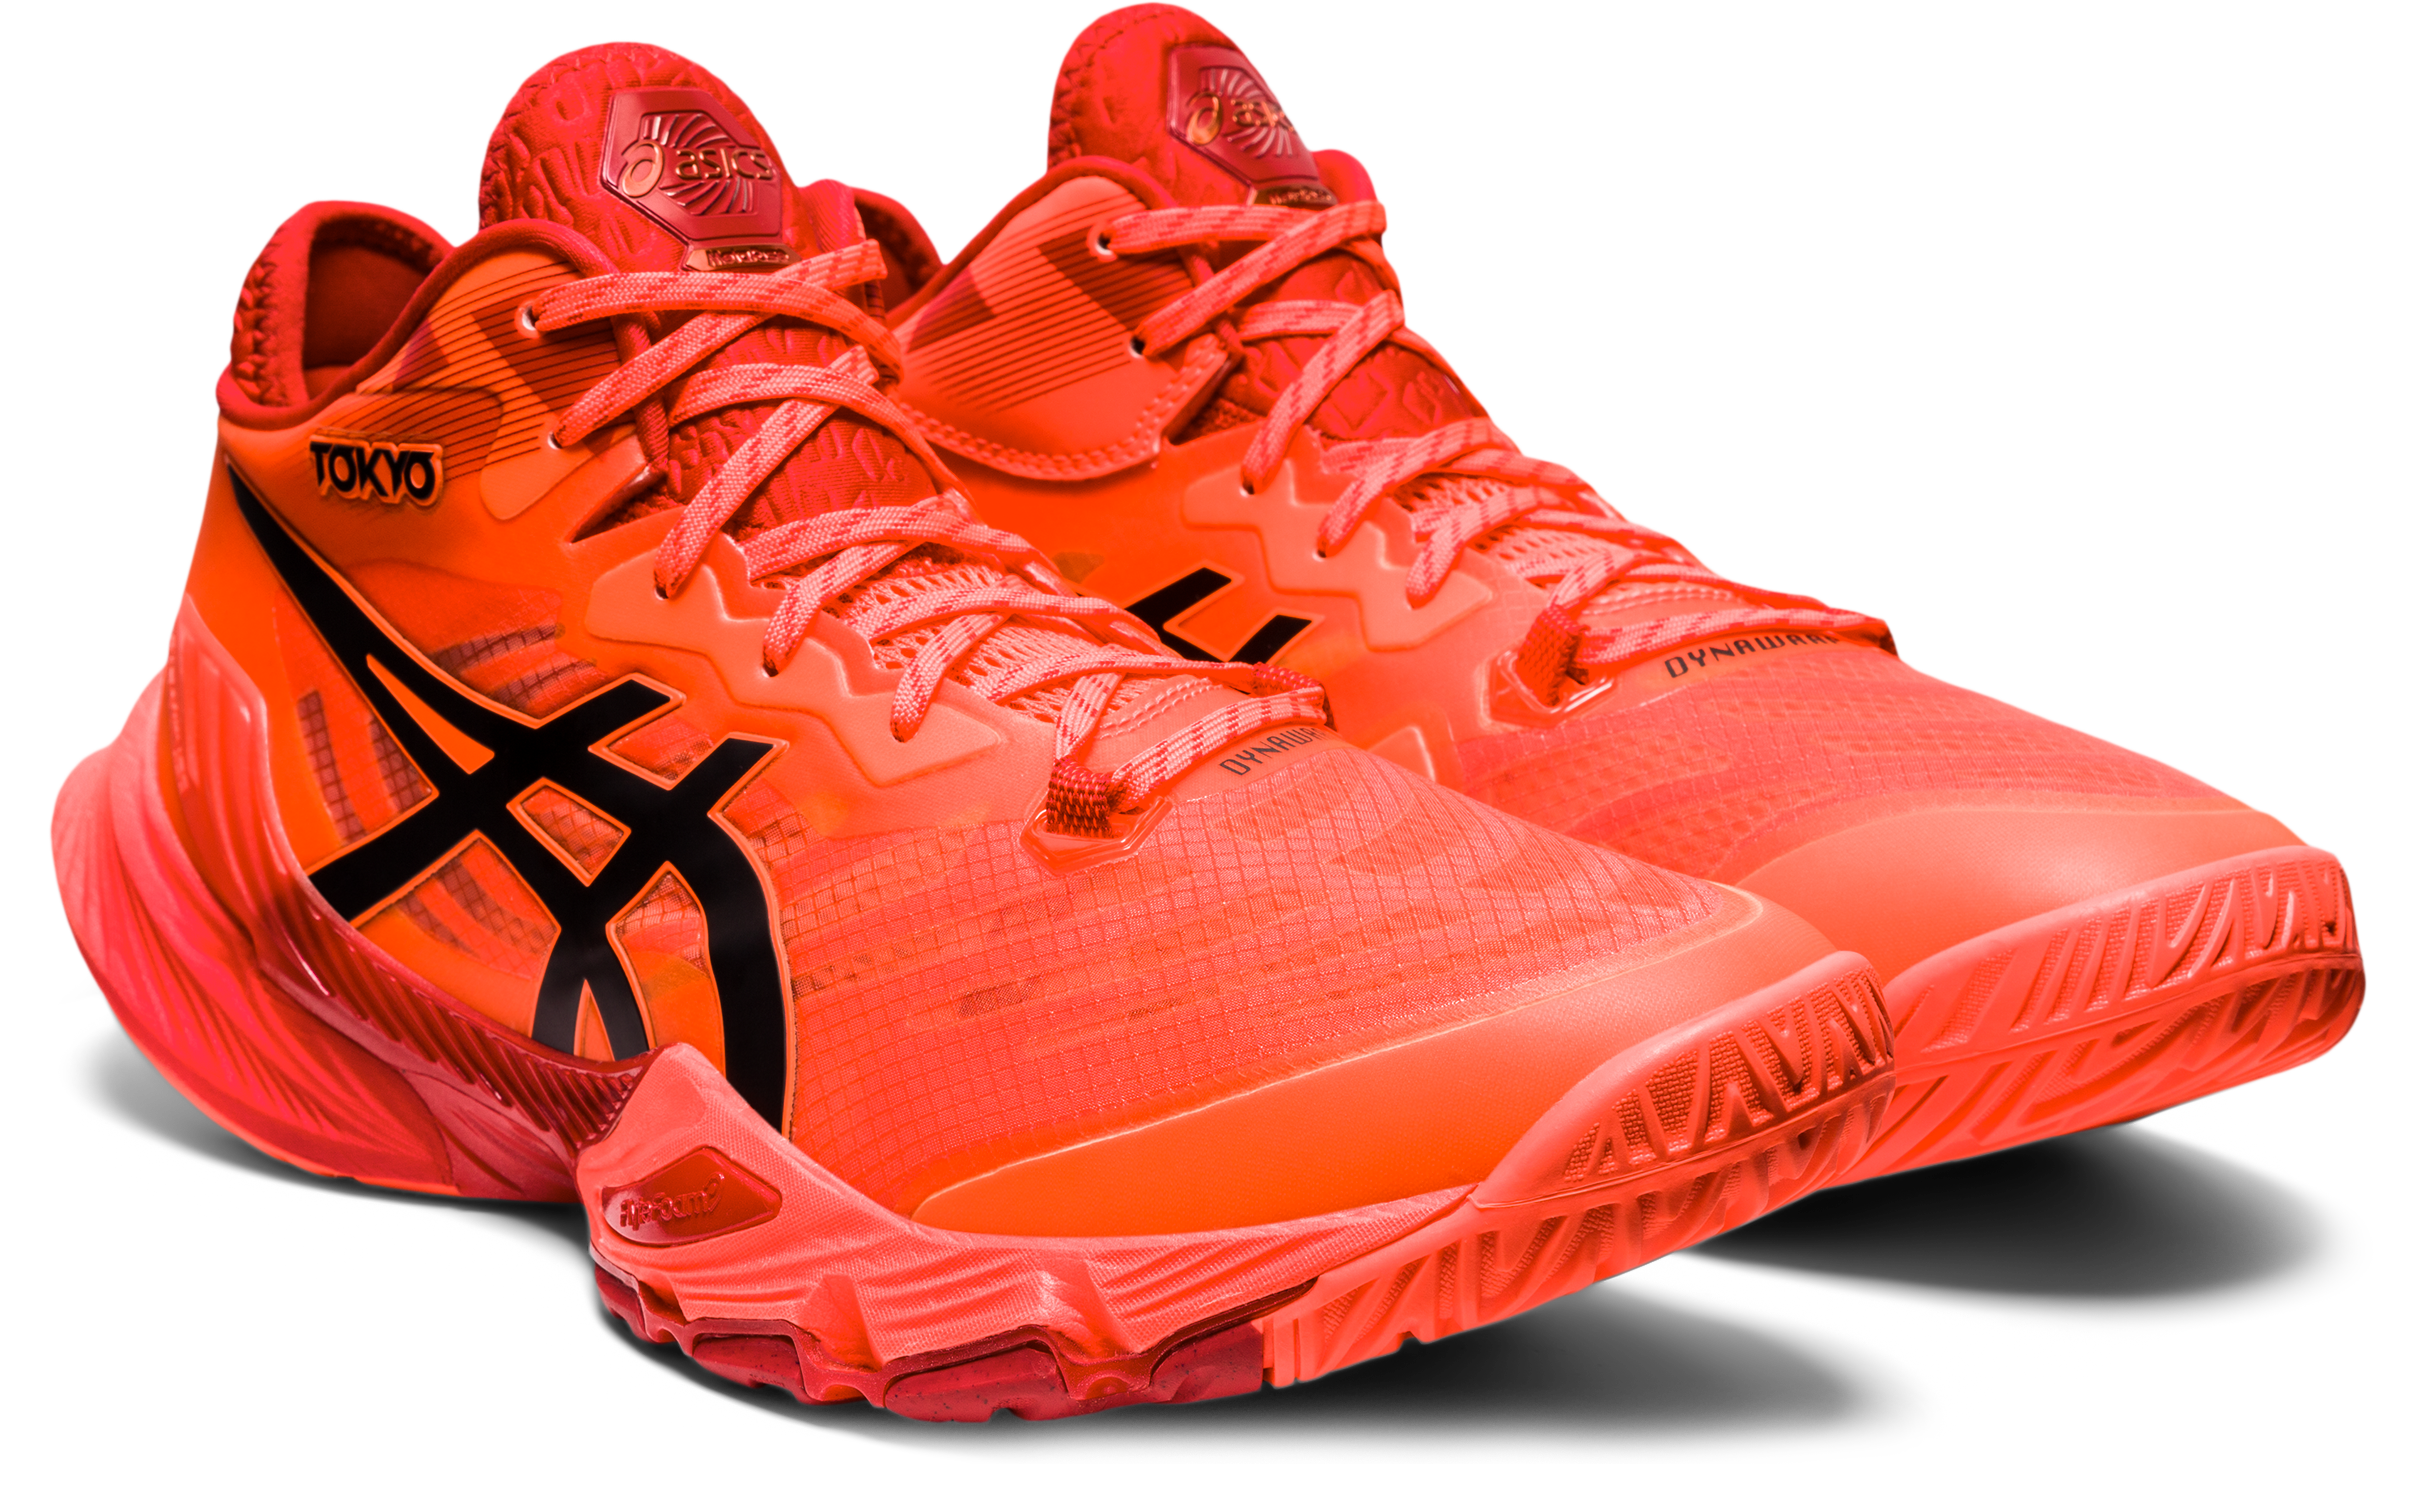 asics-metarise-chaussures-de-volley-2020-volleypack-14